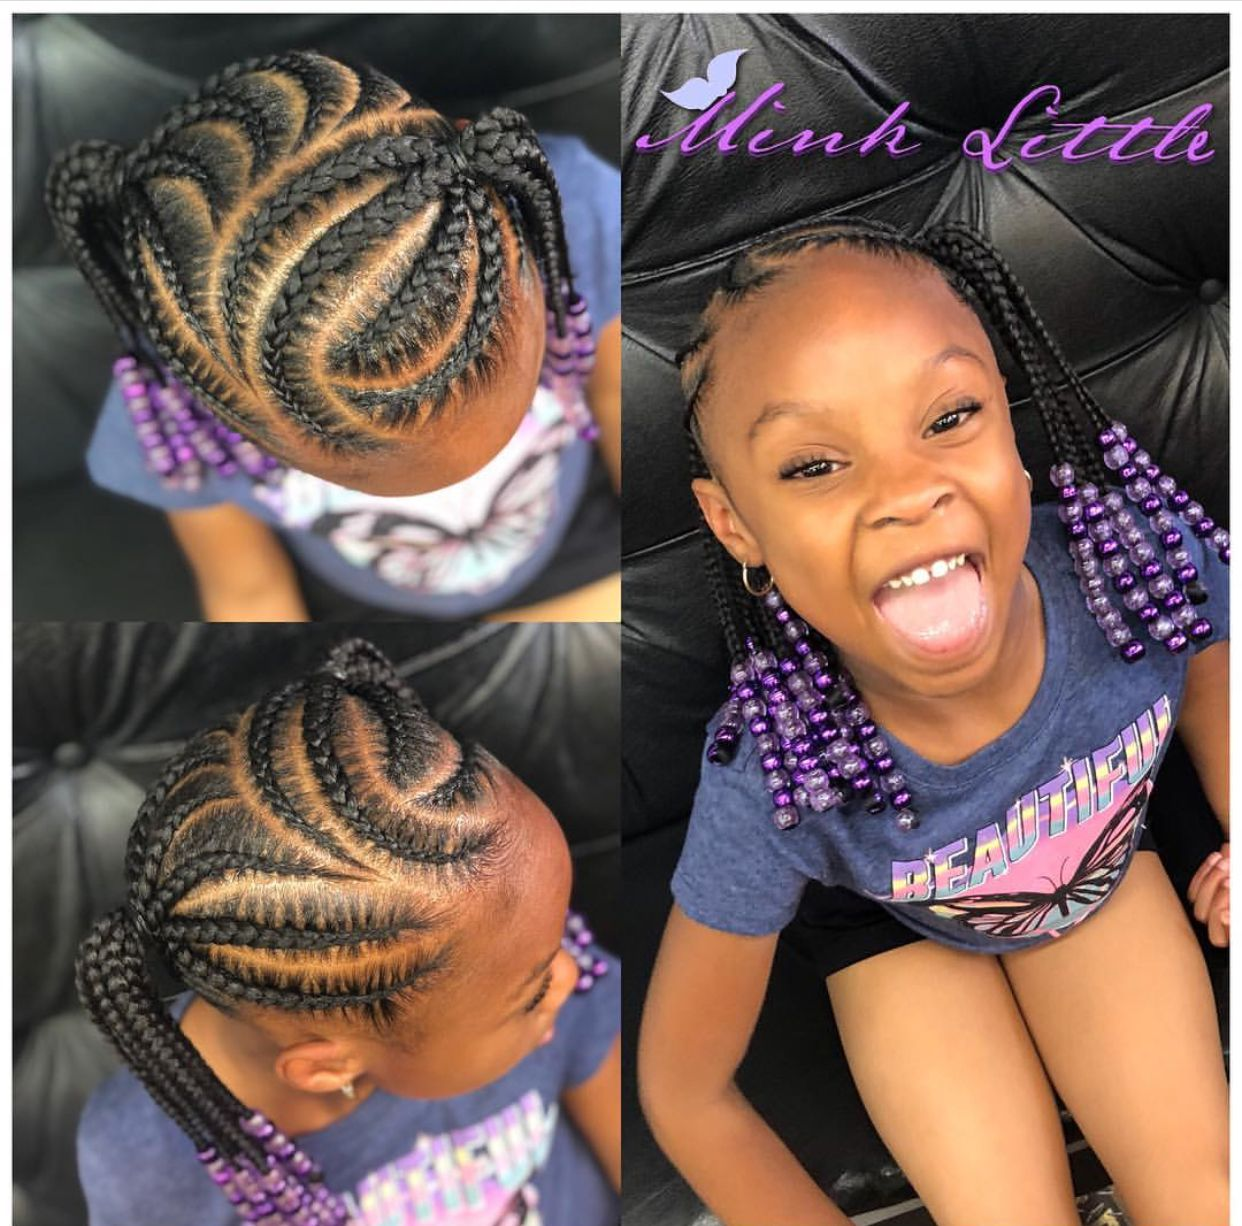 Kids Hair Styles Kids Hairstyles Girls Kids Hairstyles Kids Braided Hairstyles